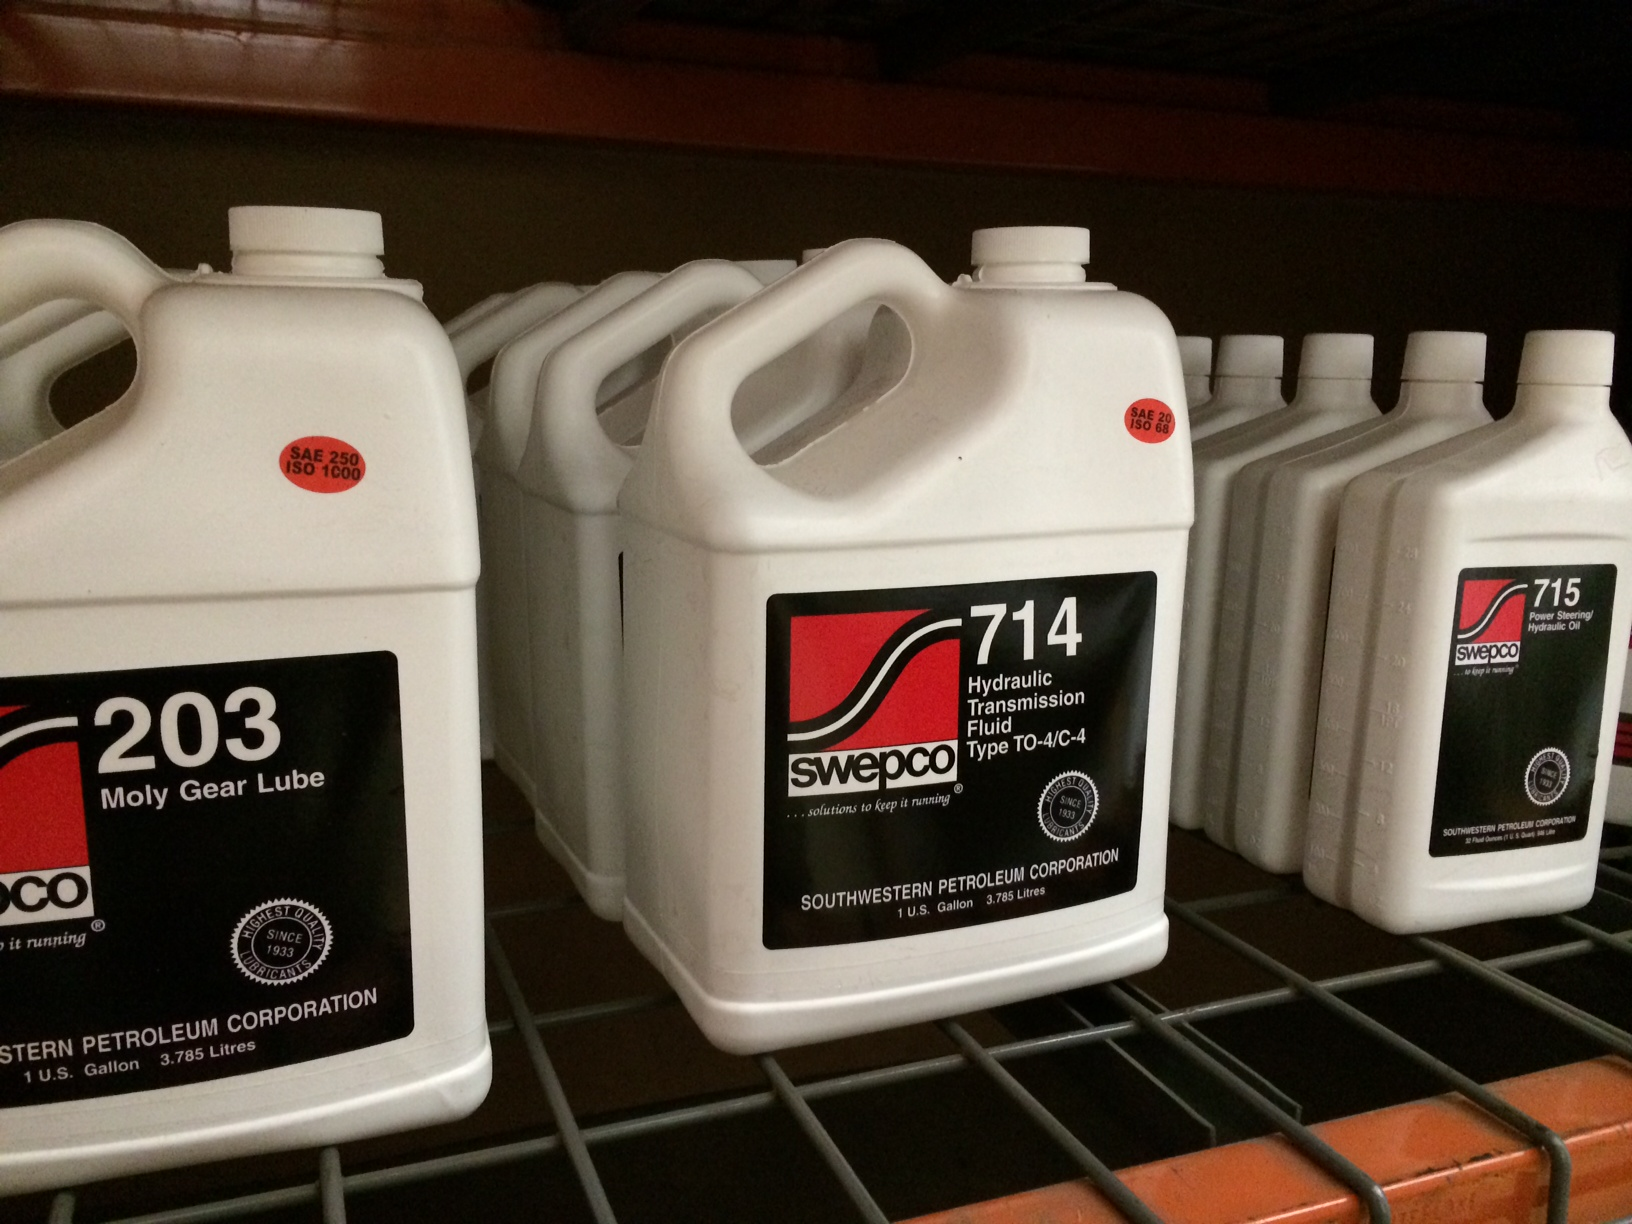 Swepco 715 Power Steering Fluid